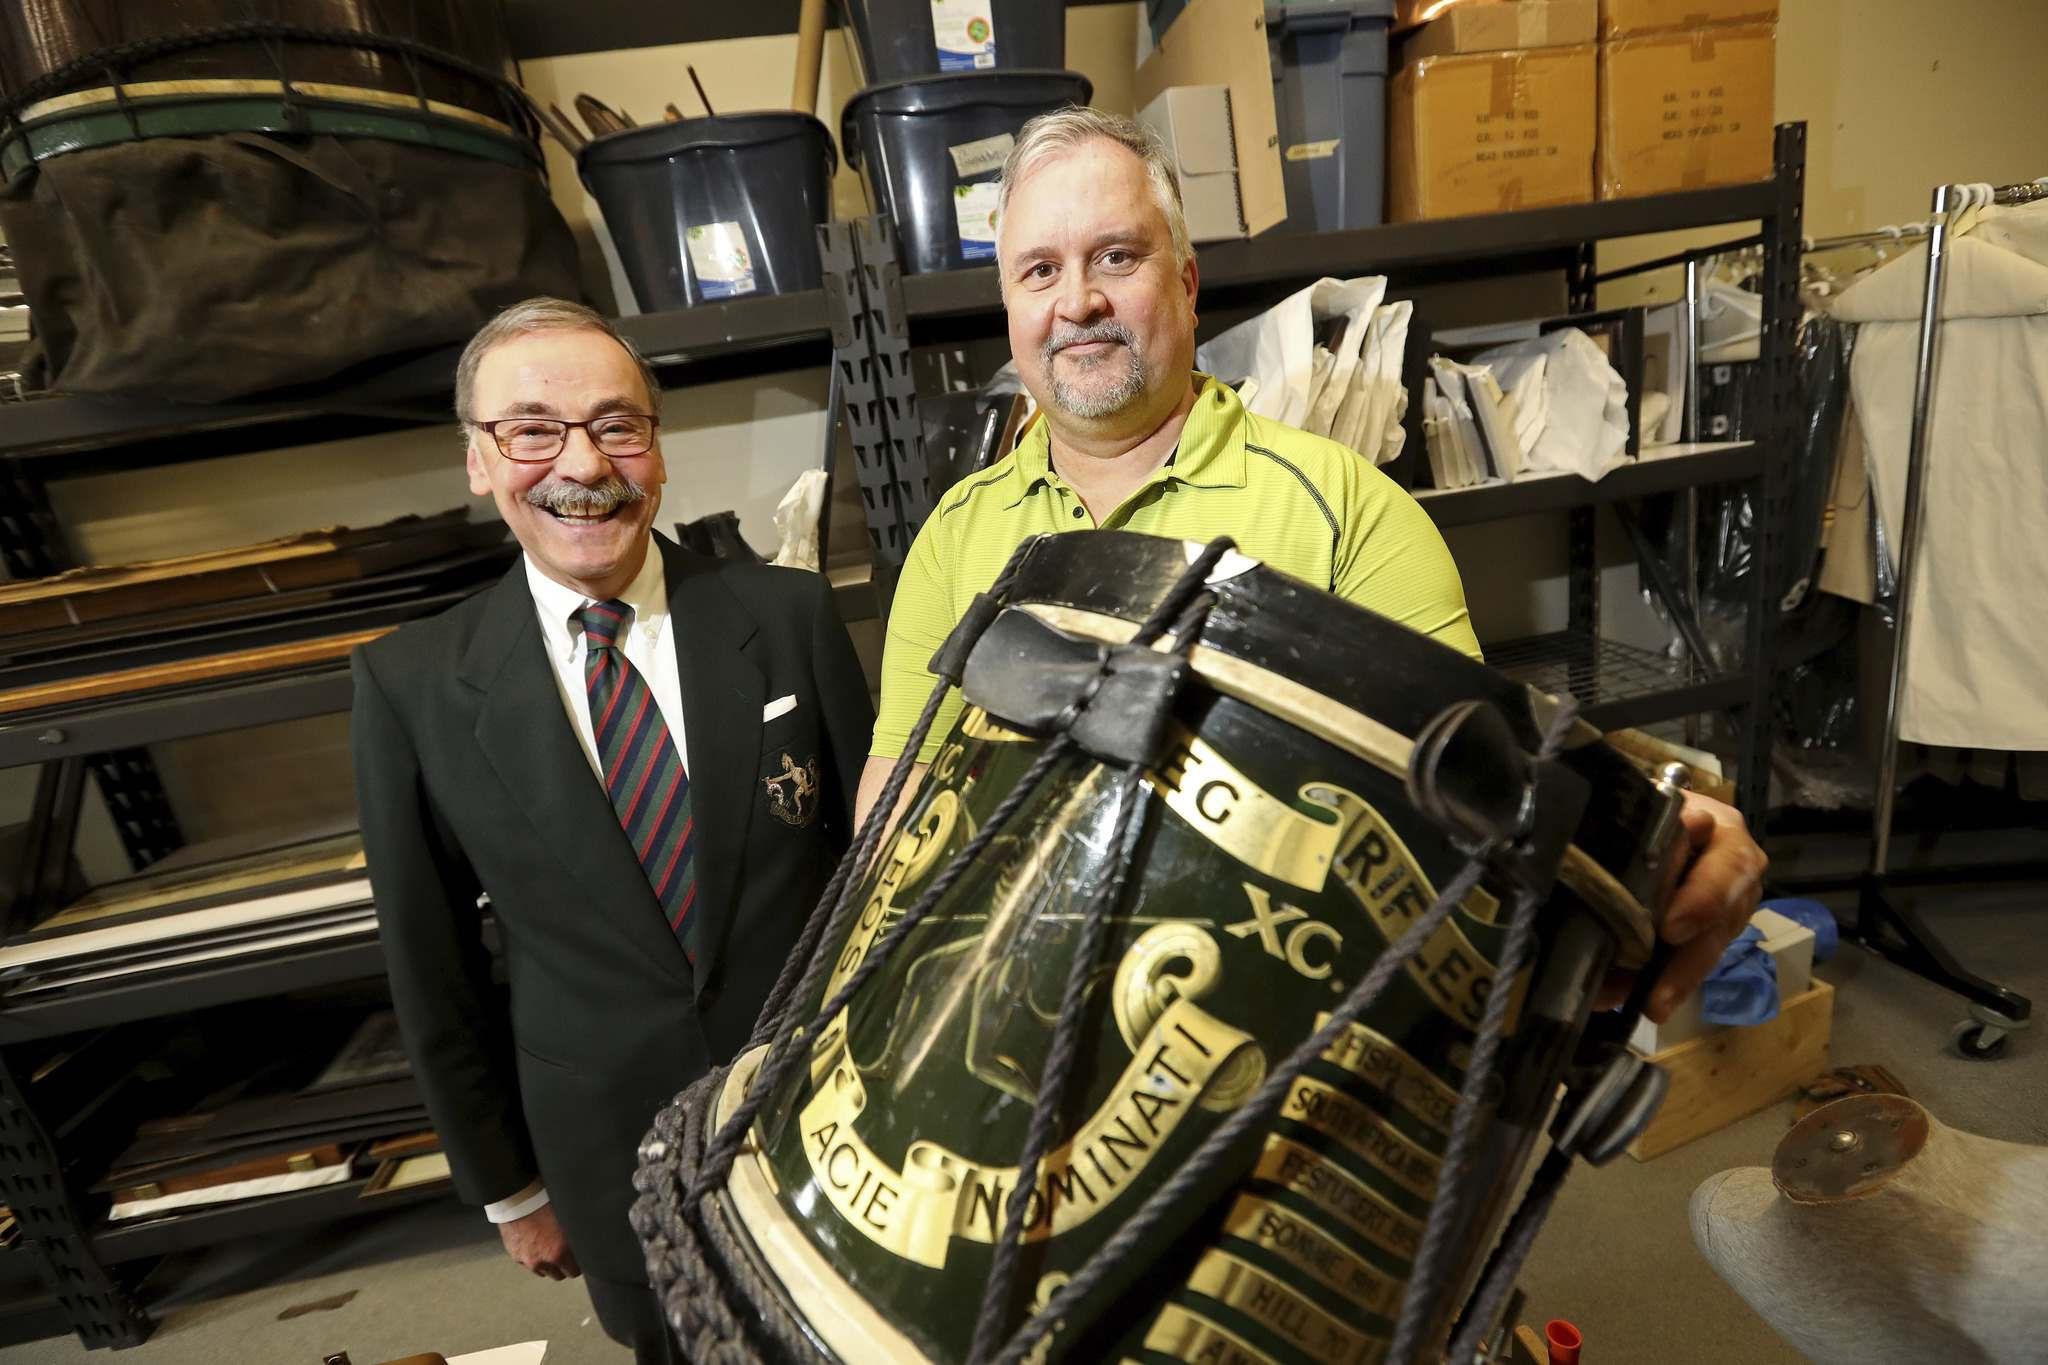 TREVOR HAGAN / WINNIPEG FREE PRESS</p><p>Retired Lt.-Col. John Robins (left) and Royal Winnipeg Rifle Museum manager Ron Burch dig through the archives.</p>